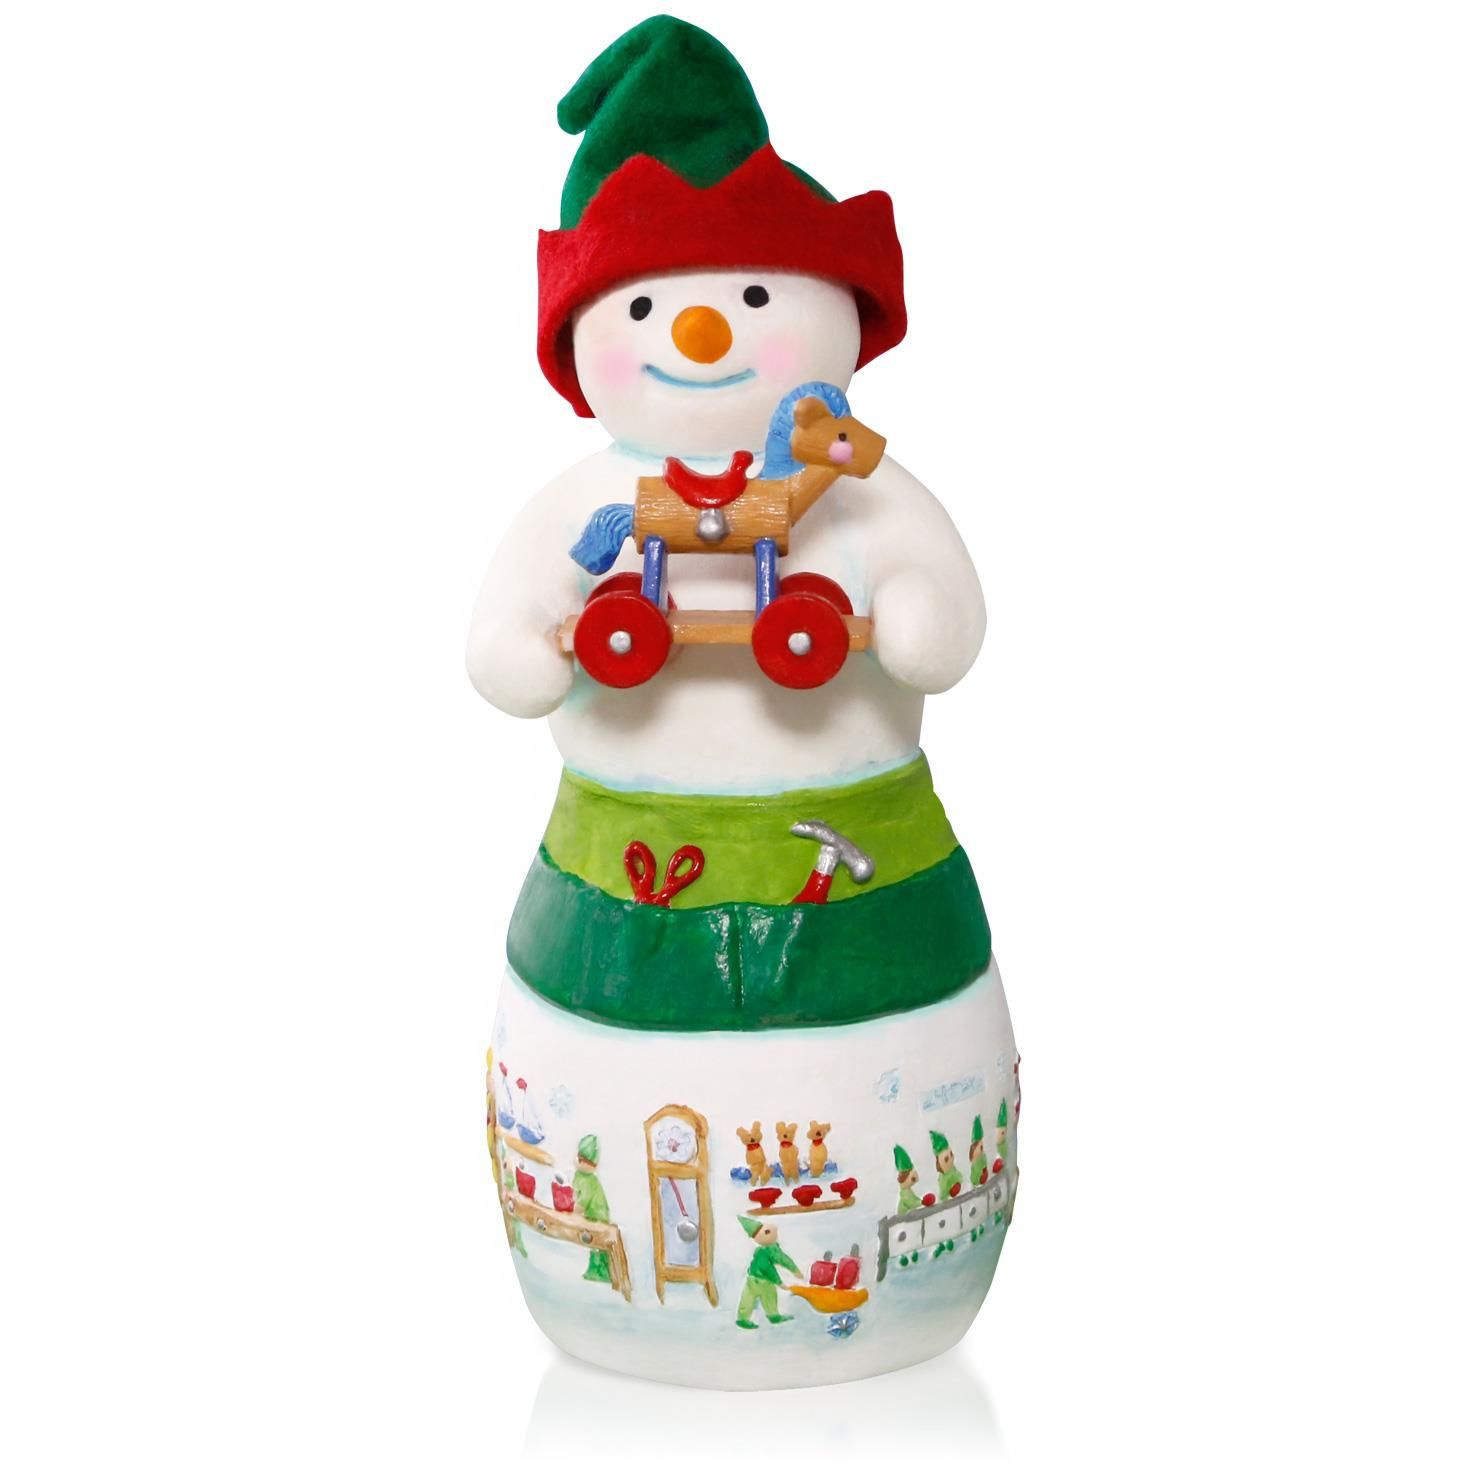 2015 Snowtop Lodge #11 Hallmark Keepsake Ornament